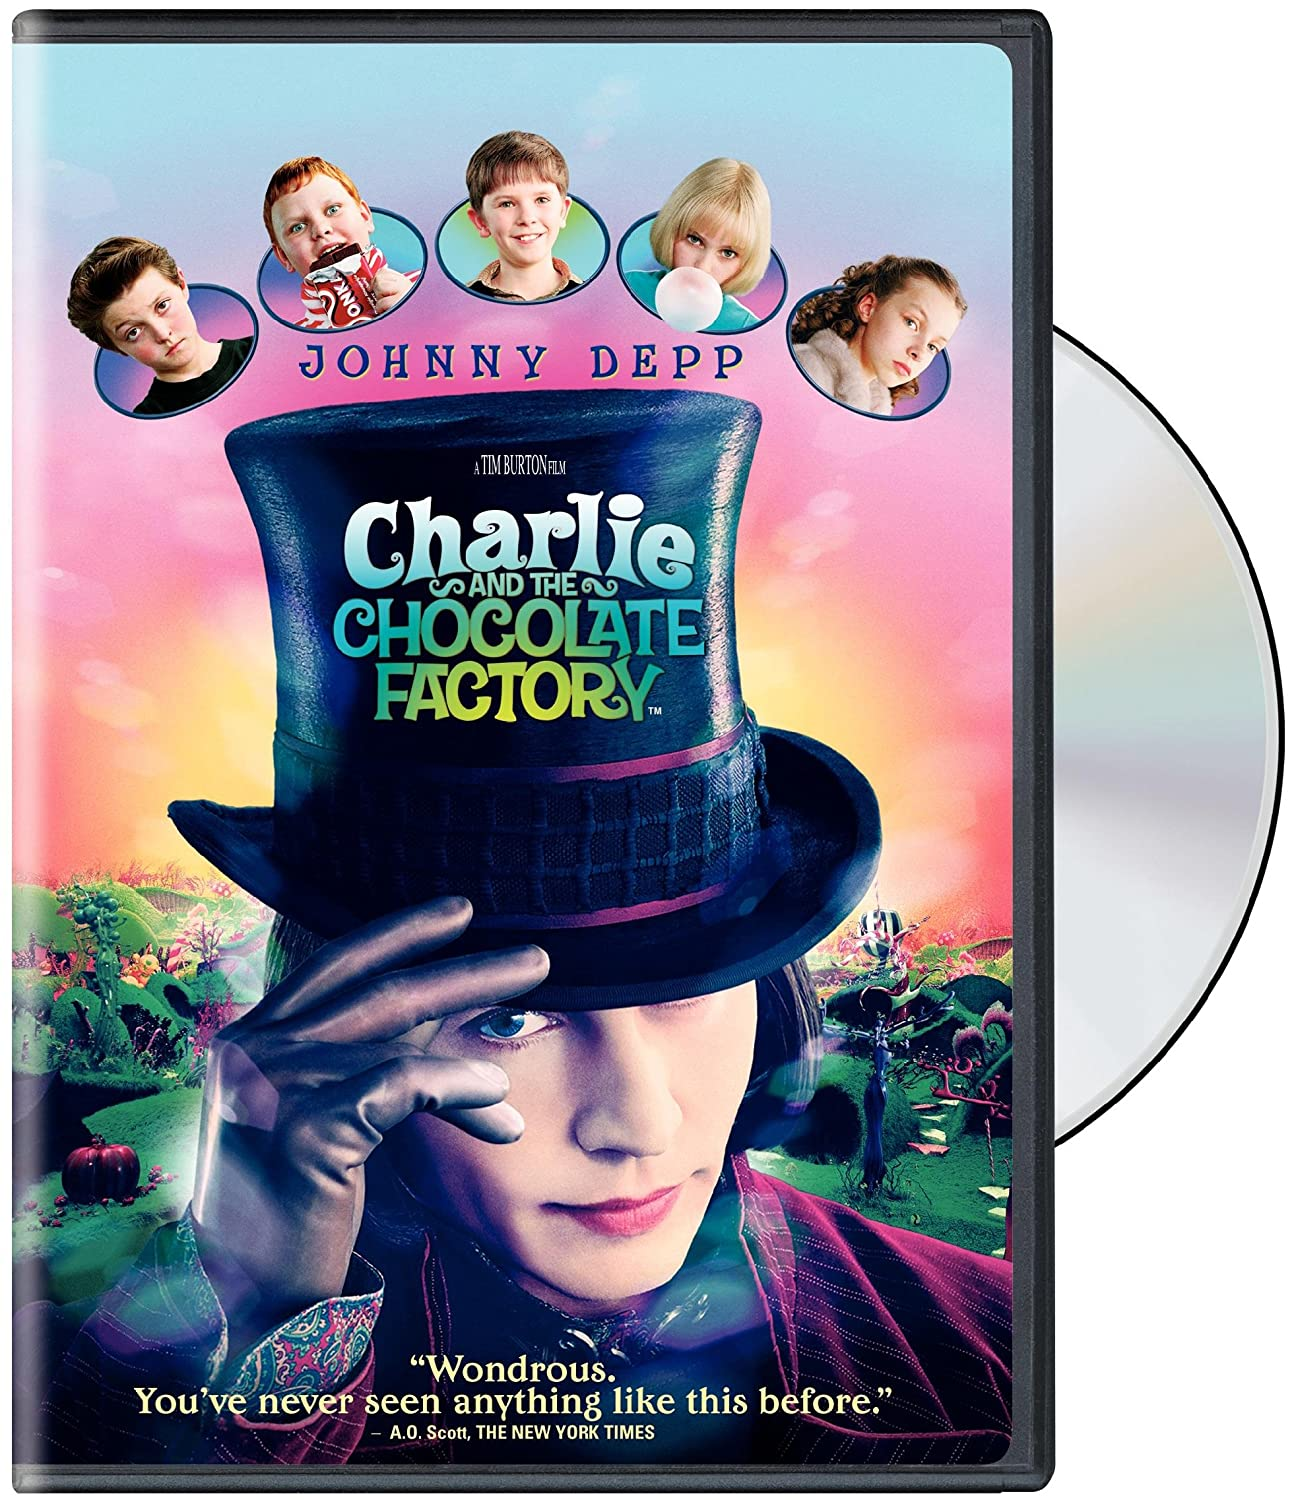 com charlie and the chocolate factory widescreen edition com charlie and the chocolate factory widescreen edition johnny depp freddie highmore david kelly helena bonham carter noah taylor